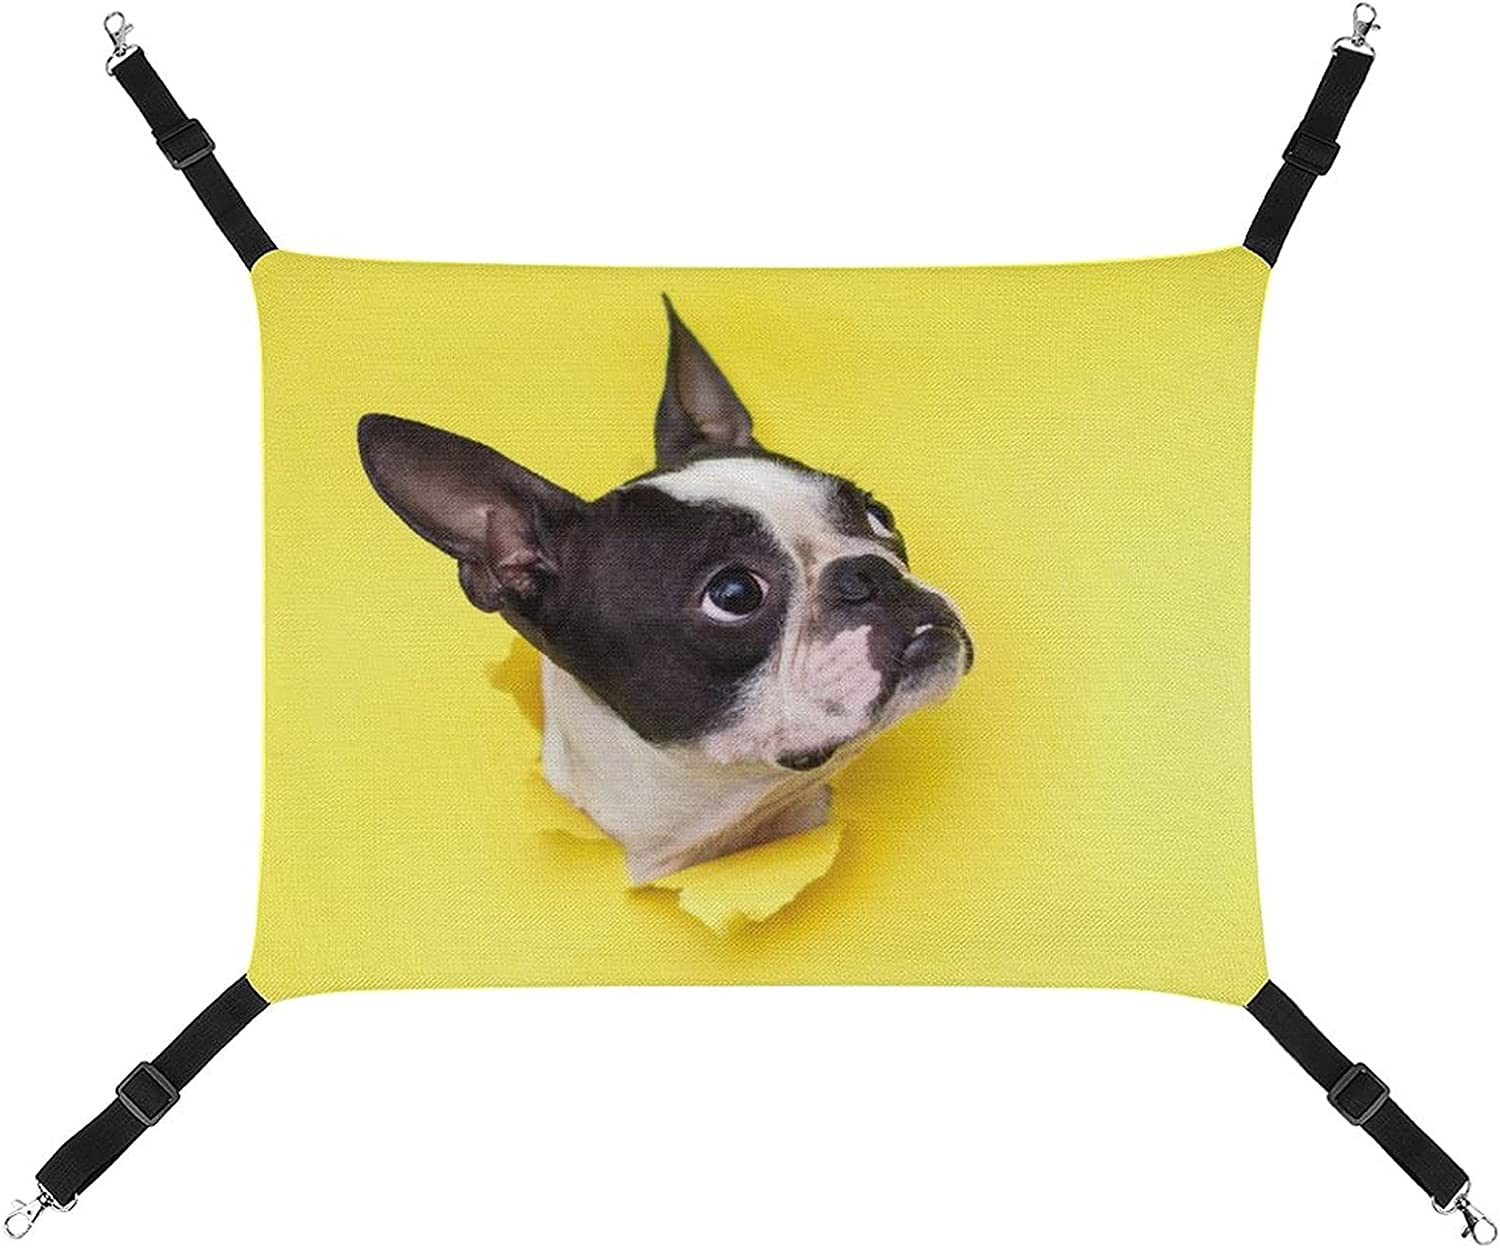 Pet Small online shopping Animal Hammock Warm Soft Cat Comfortable Breathabl Pad Sale Special Price